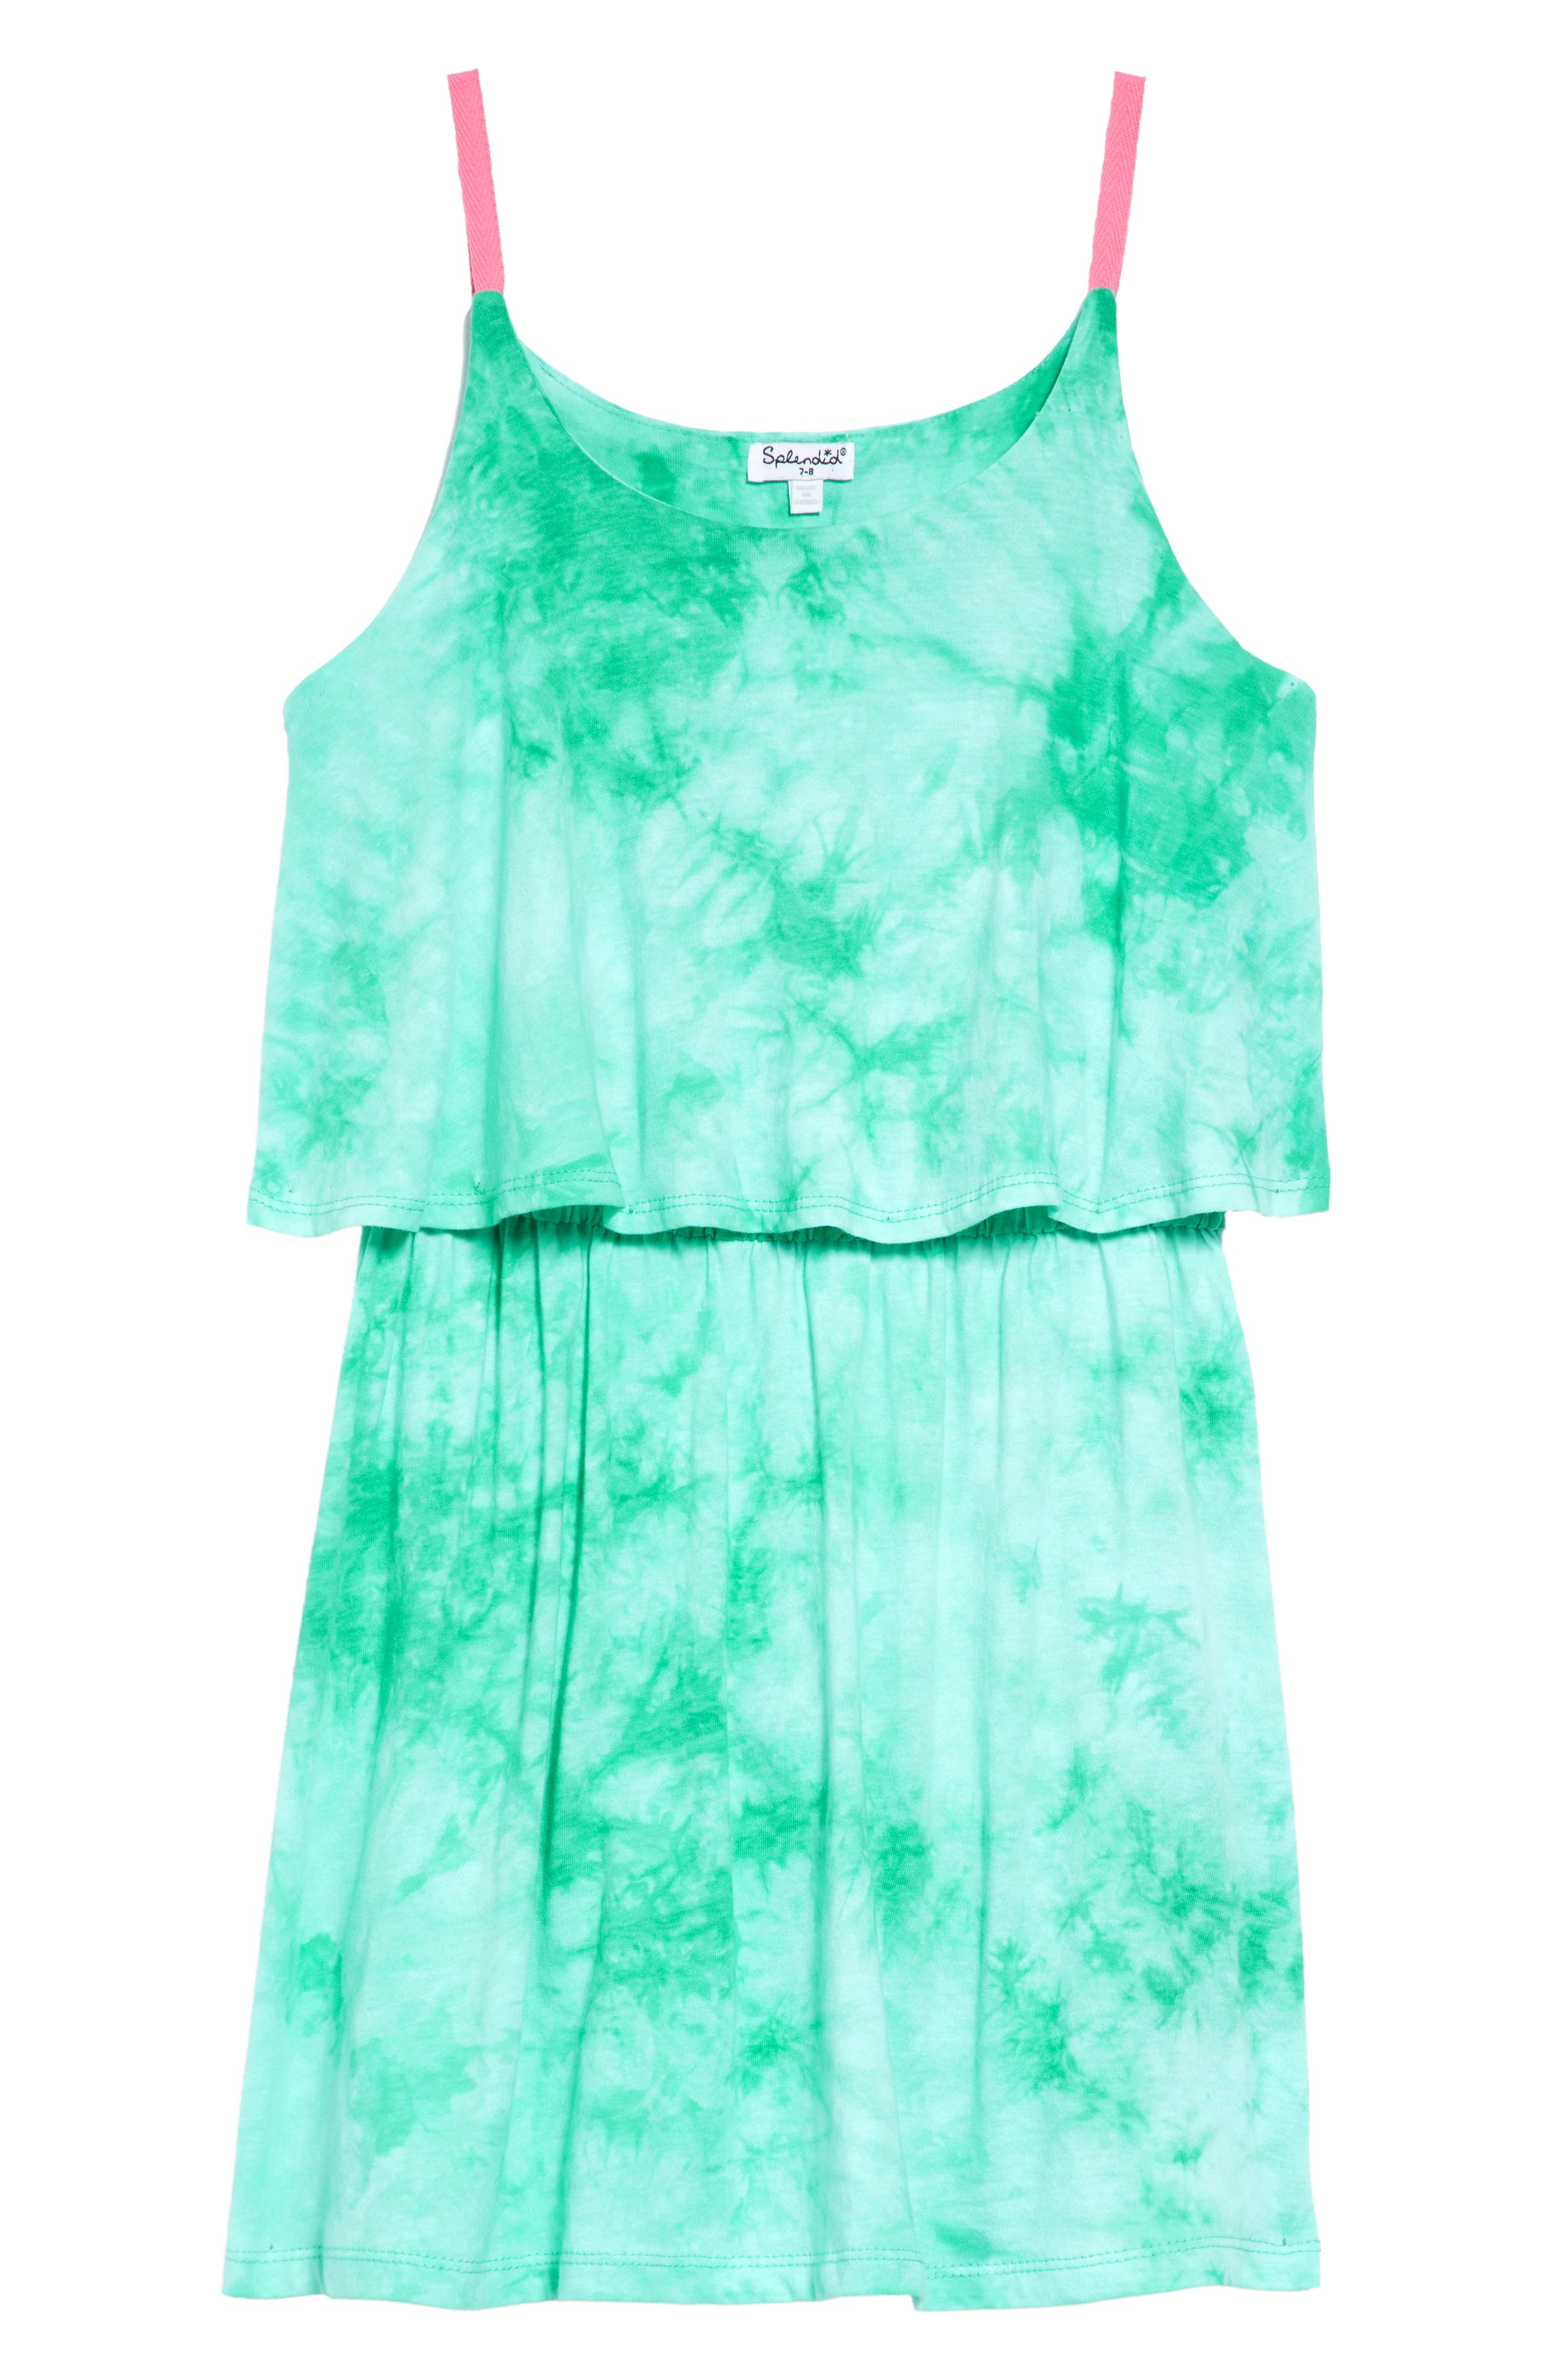 Girls\' Splendid Clothing and Accessories | Nordstrom